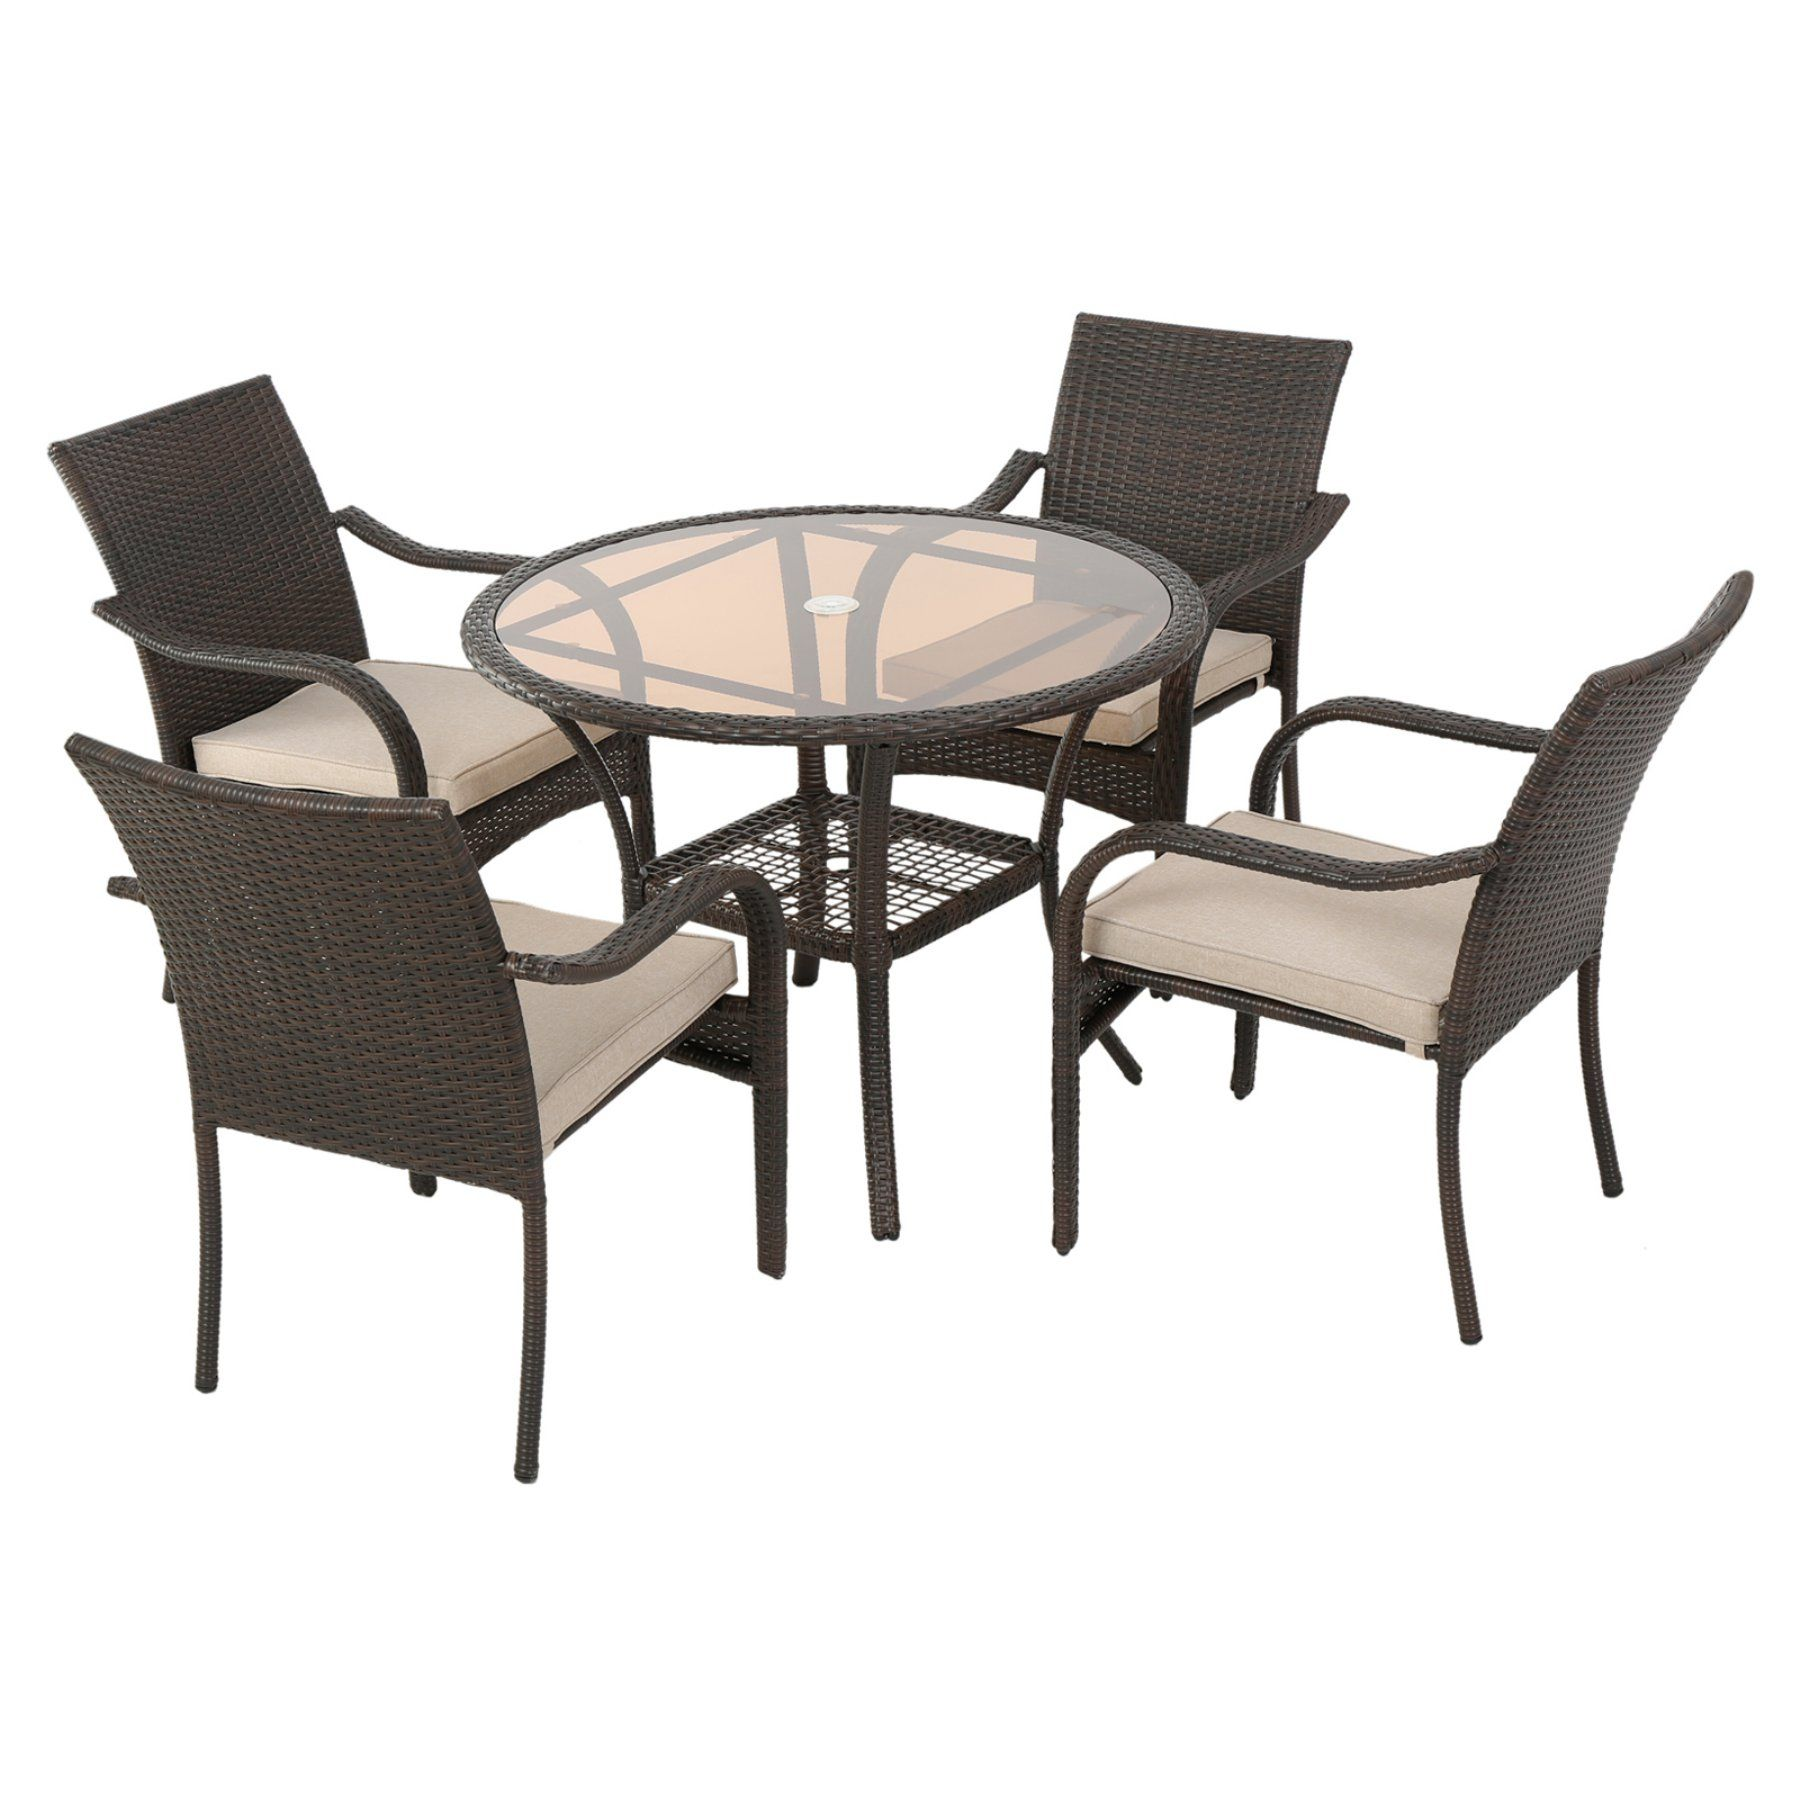 Outdoor best selling home decor furniture bailey wicker 5 piece round patio dining set with cushion 296748